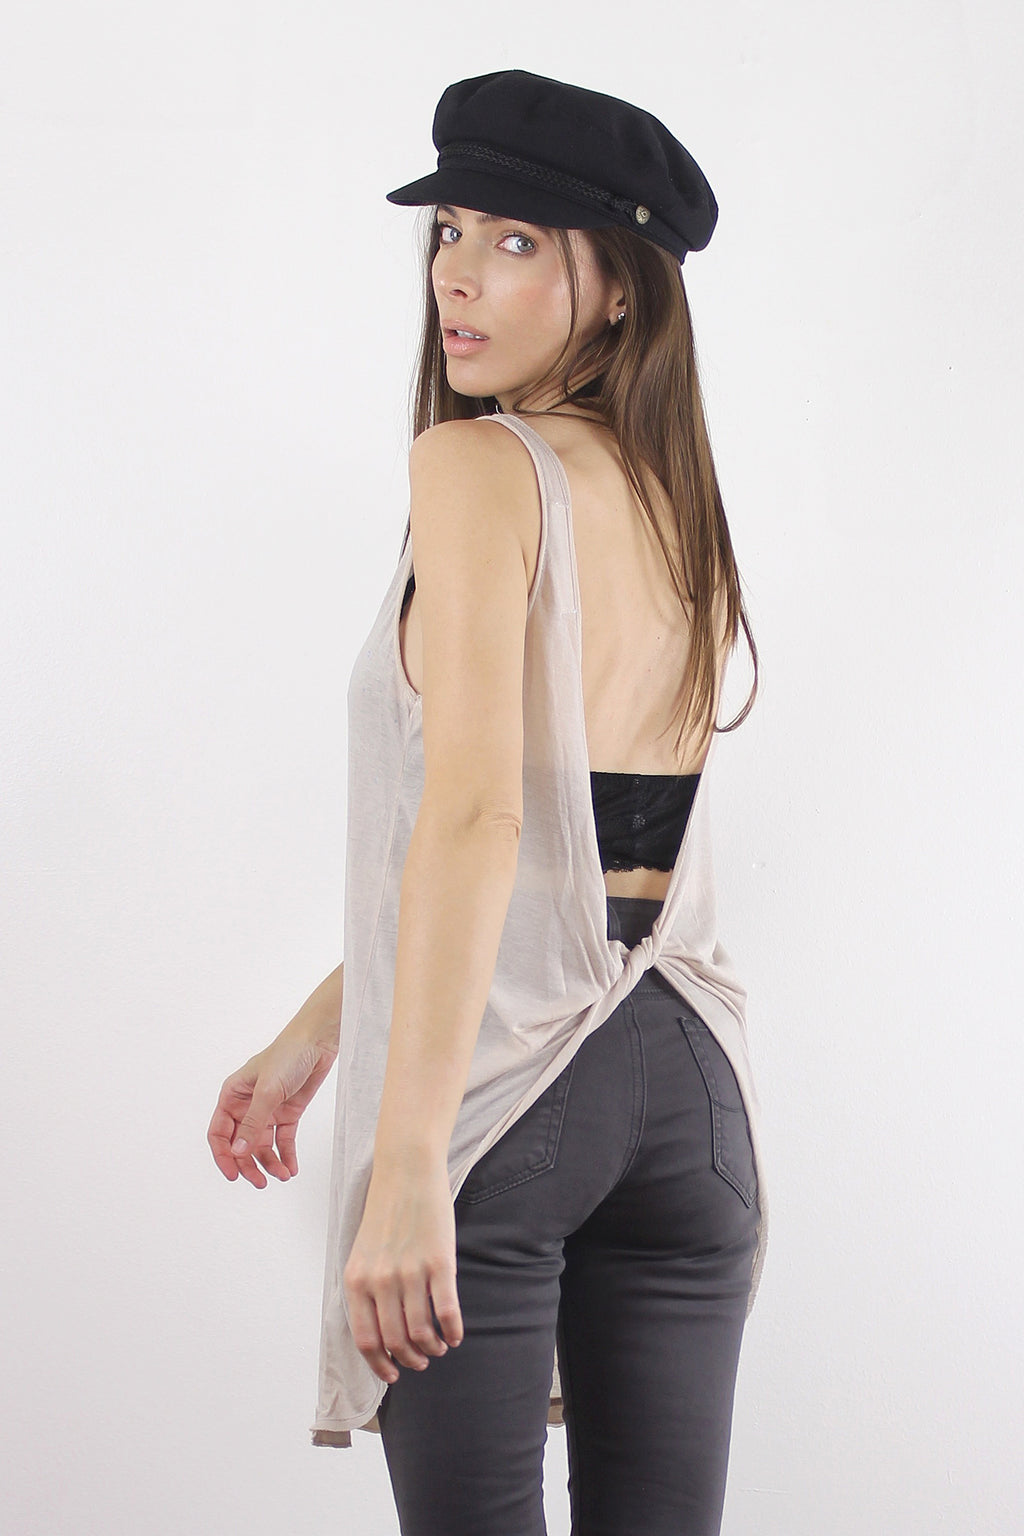 Open back tee shirt in Nude.